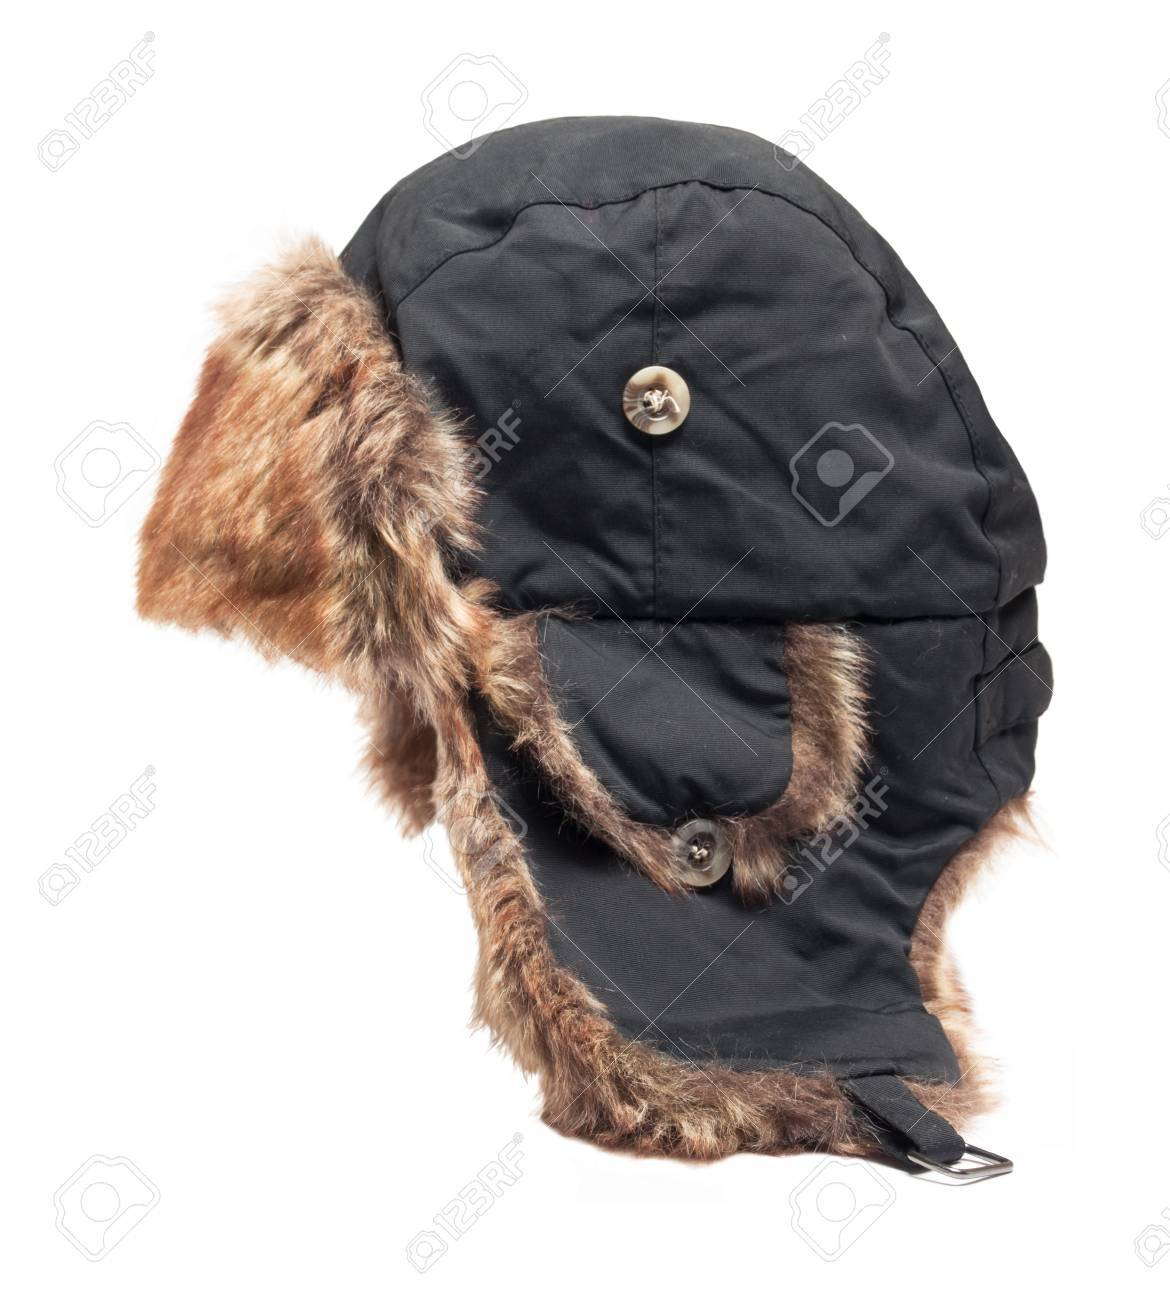 2650704371d hat with ear flaps isolated Stock Photo - 32525412